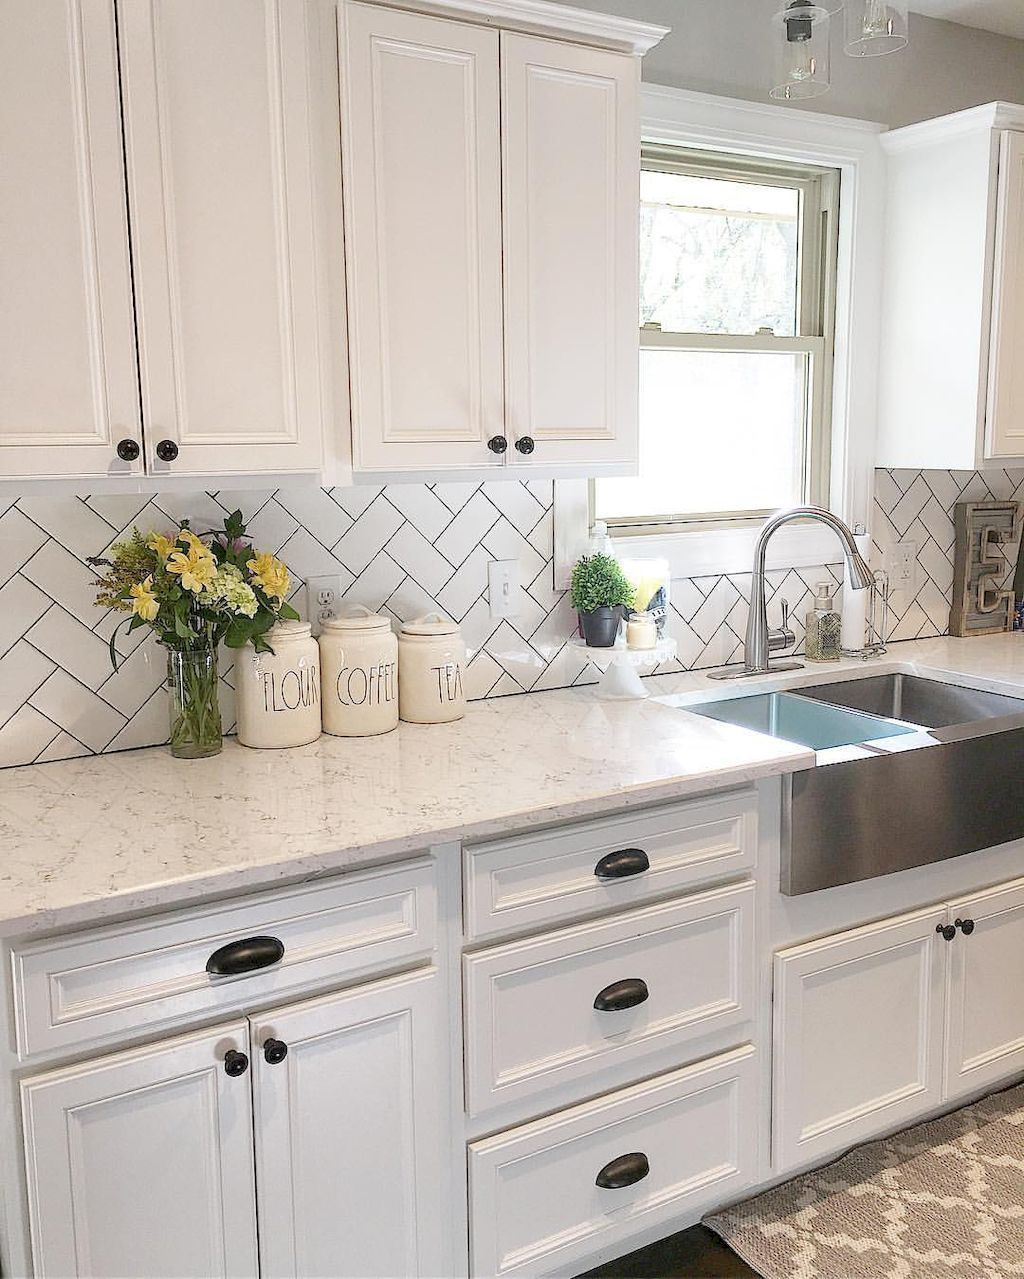 75 Beautiful Farmhouse Kitchen Backsplash Design Ideas - BrowsyouRoom